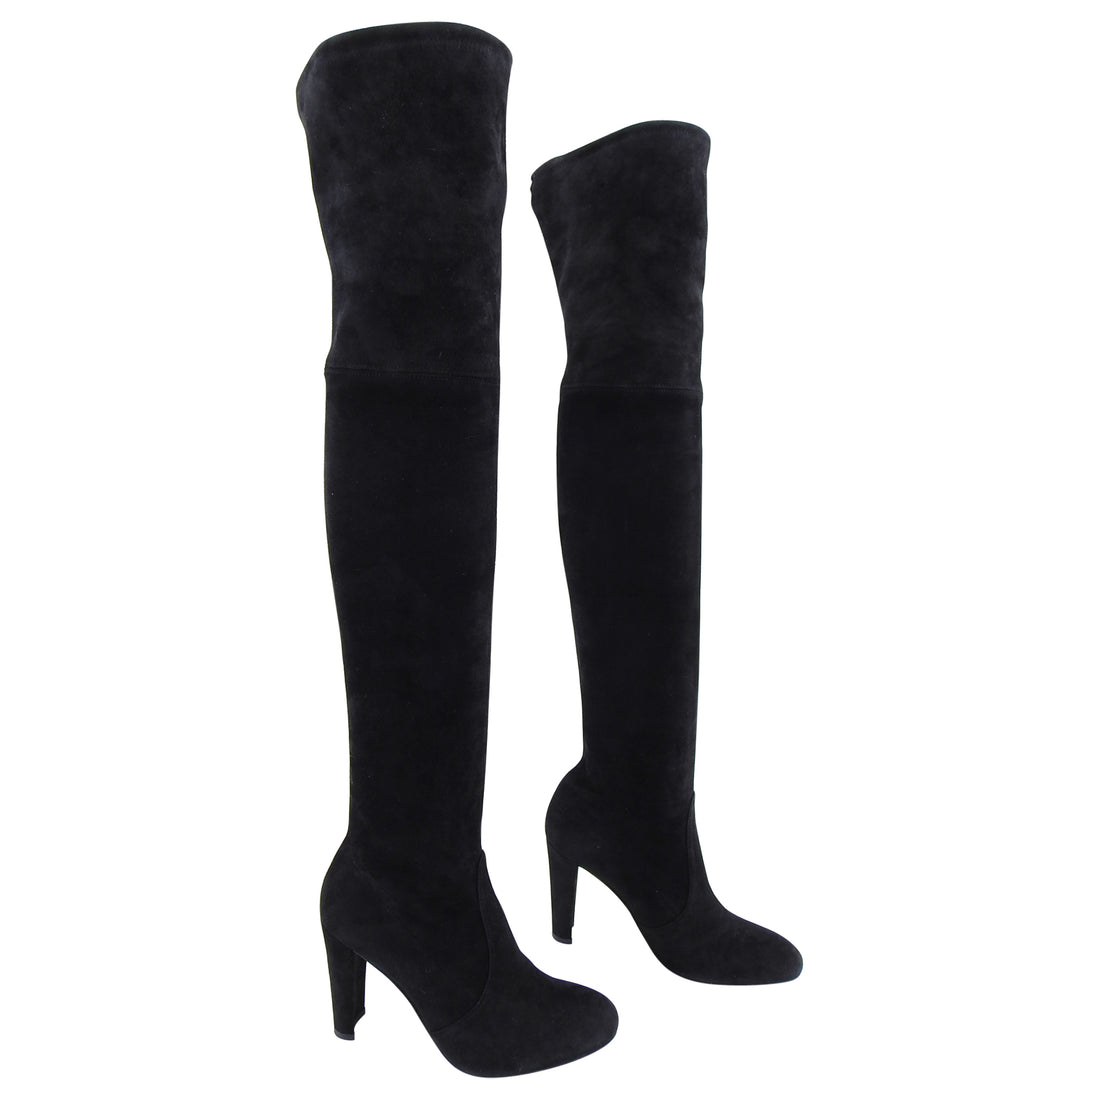 Stuart Weitzman Highline Over the Knee Black Suede Tall Boots - 6.5